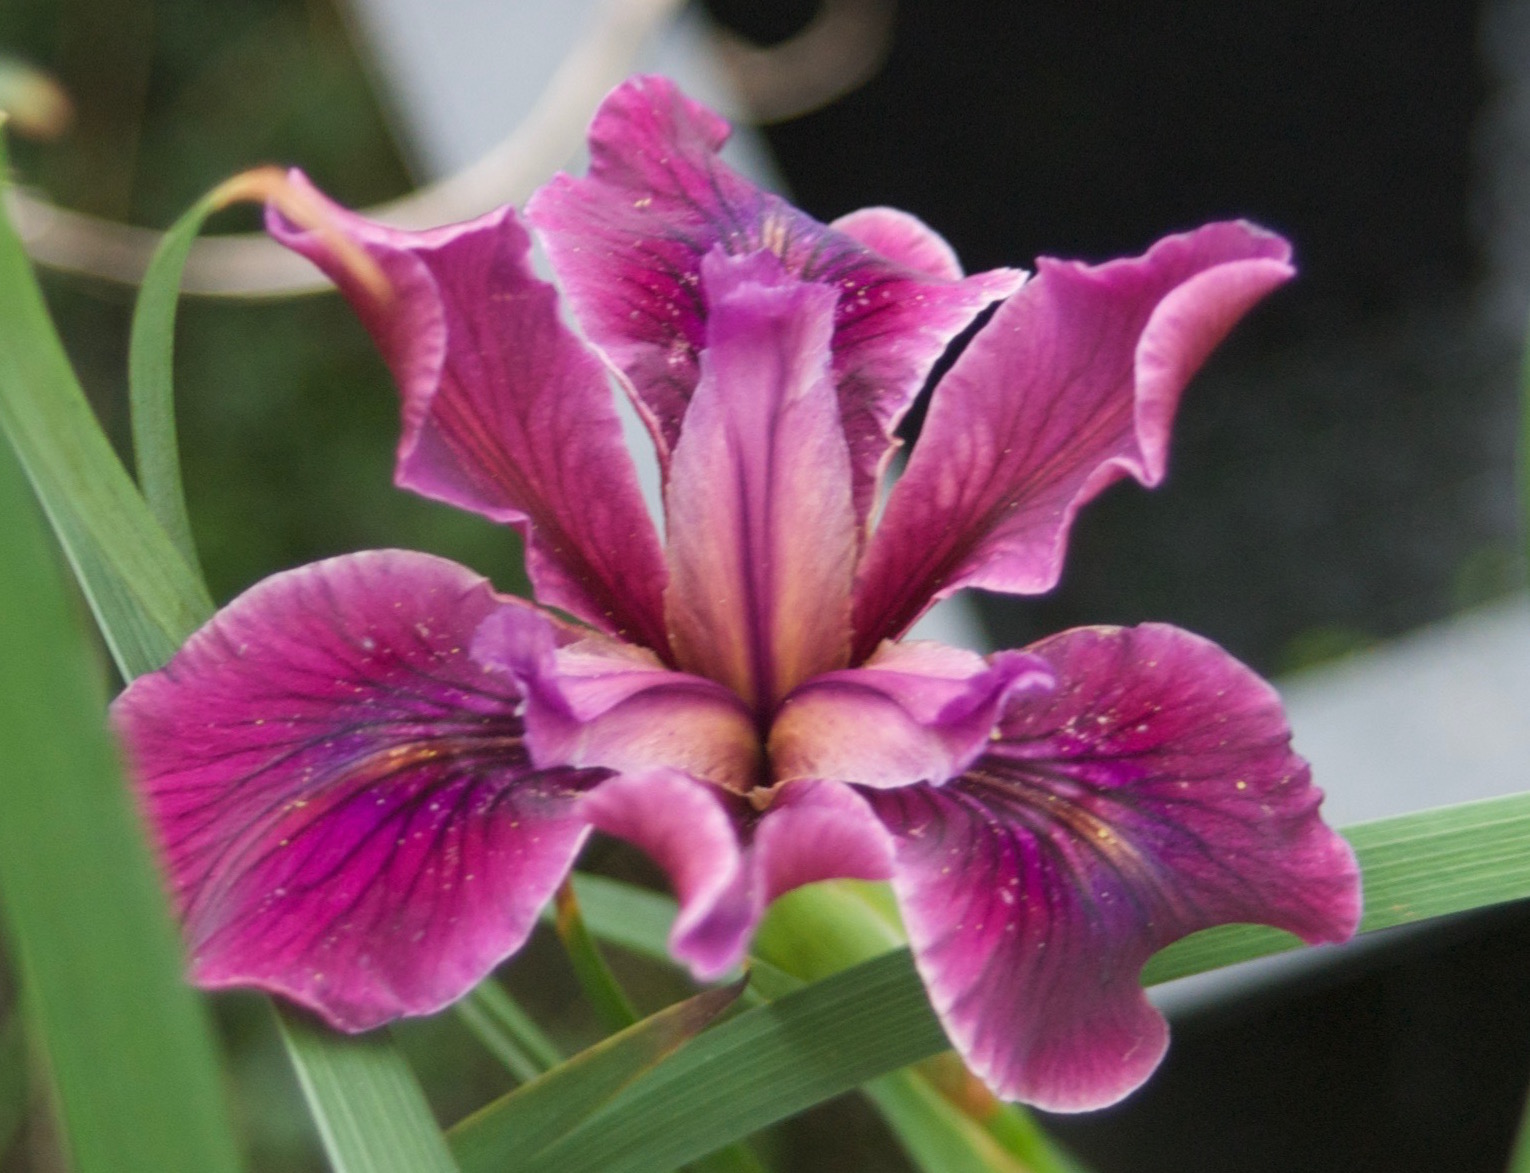 Iris X Pacifica Mission Santa Cruz Pacific Coast Hybrid Has Glowing Rosy Red Magenta Flowers It Is A Mid Season Bloomer About 12 Tall